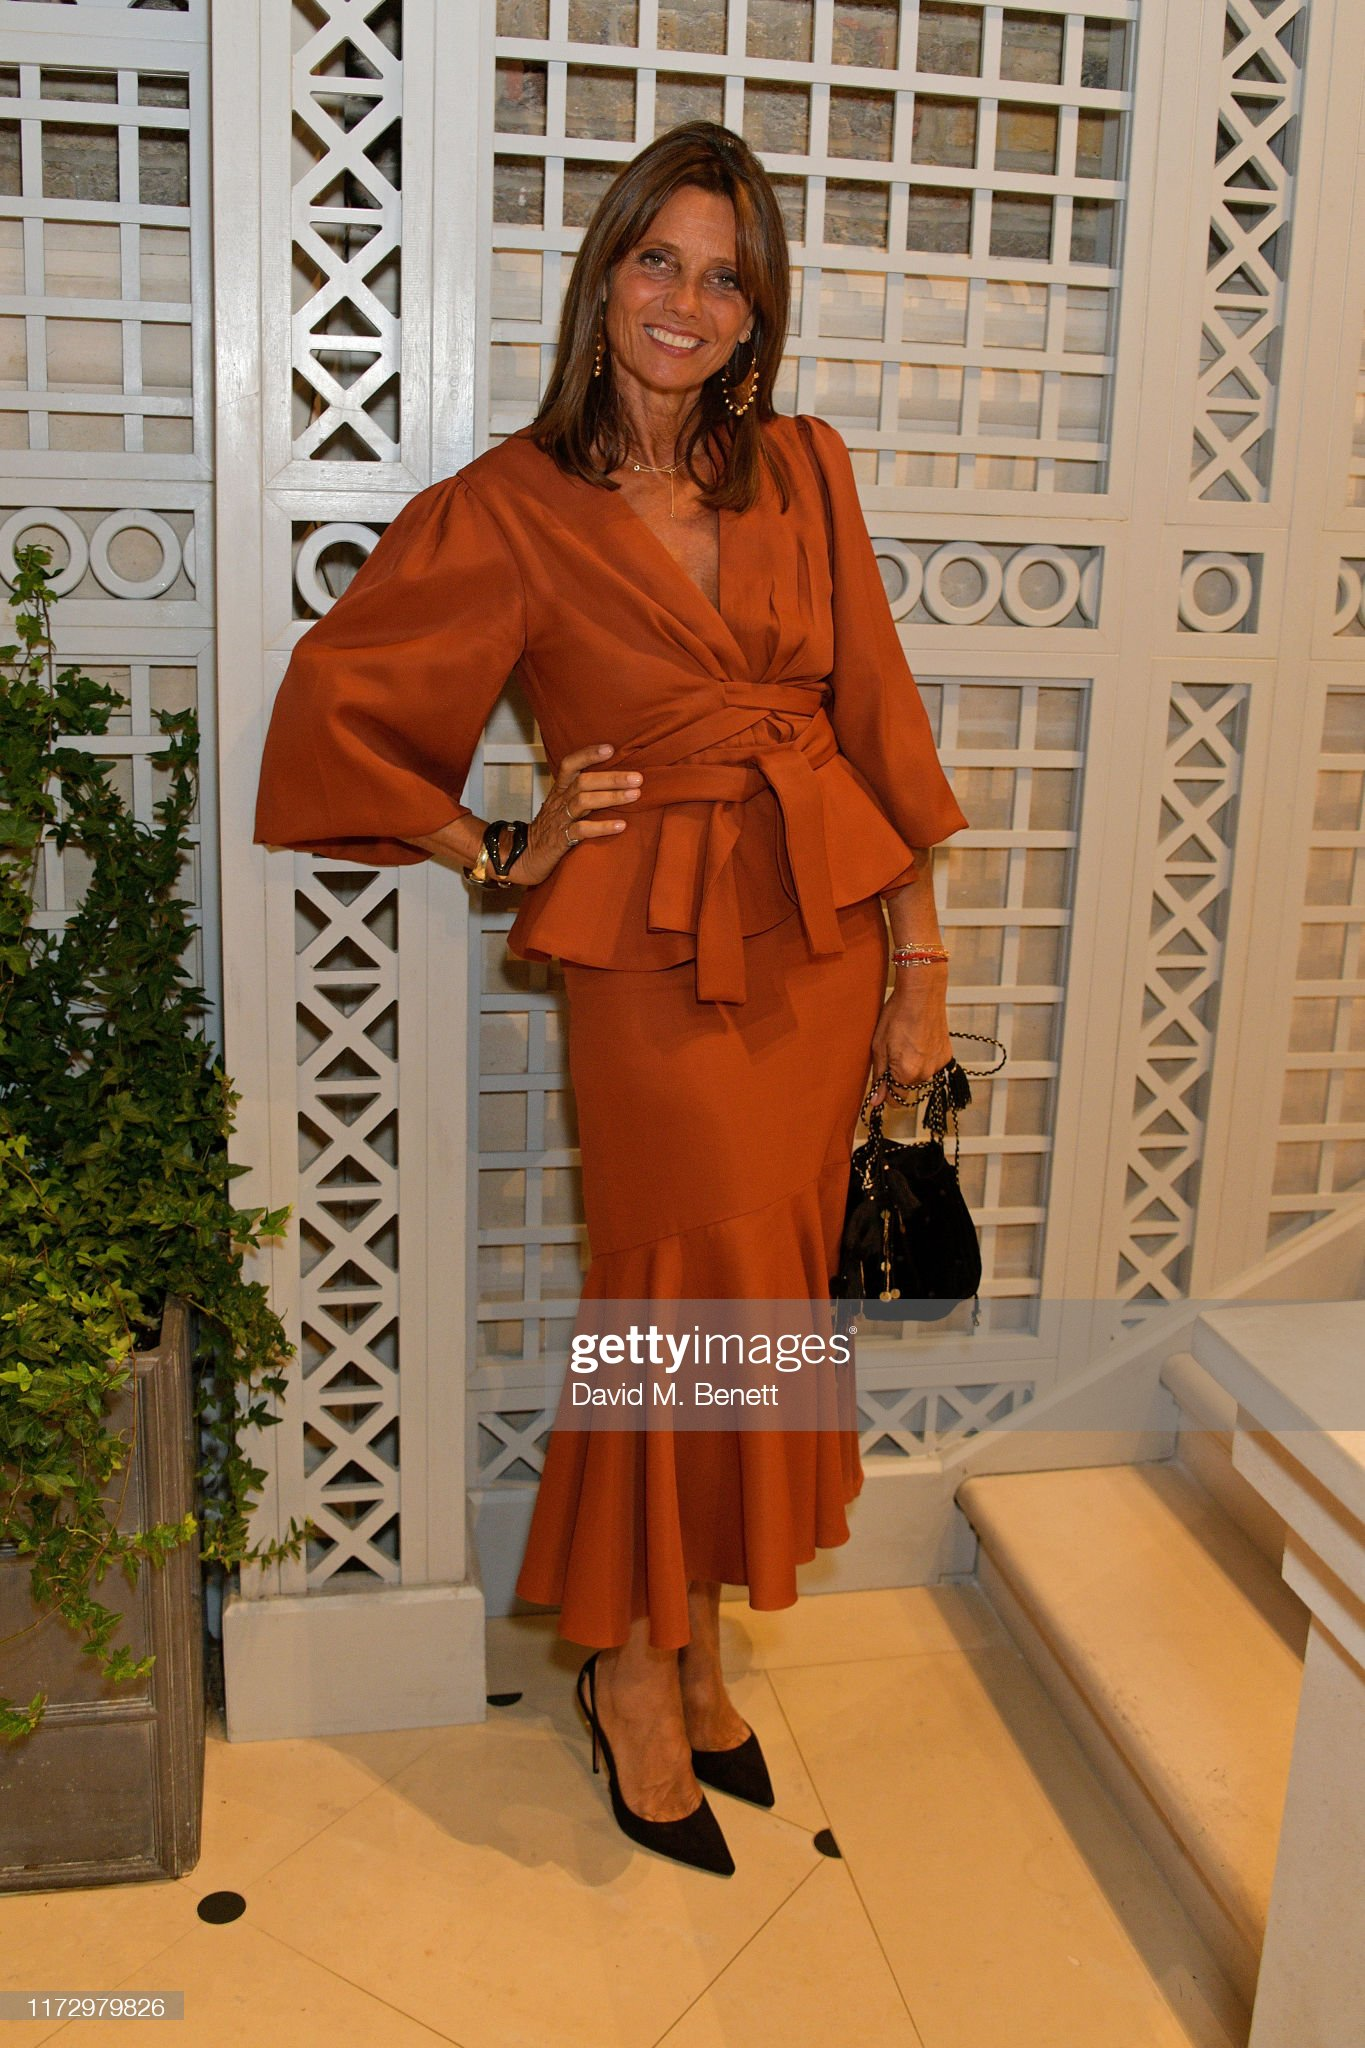 https://media.gettyimages.com/photos/debbonnaire-von-bismarck-attends-the-dior-sessions-book-launch-on-01-picture-id1172979826?s=2048x2048